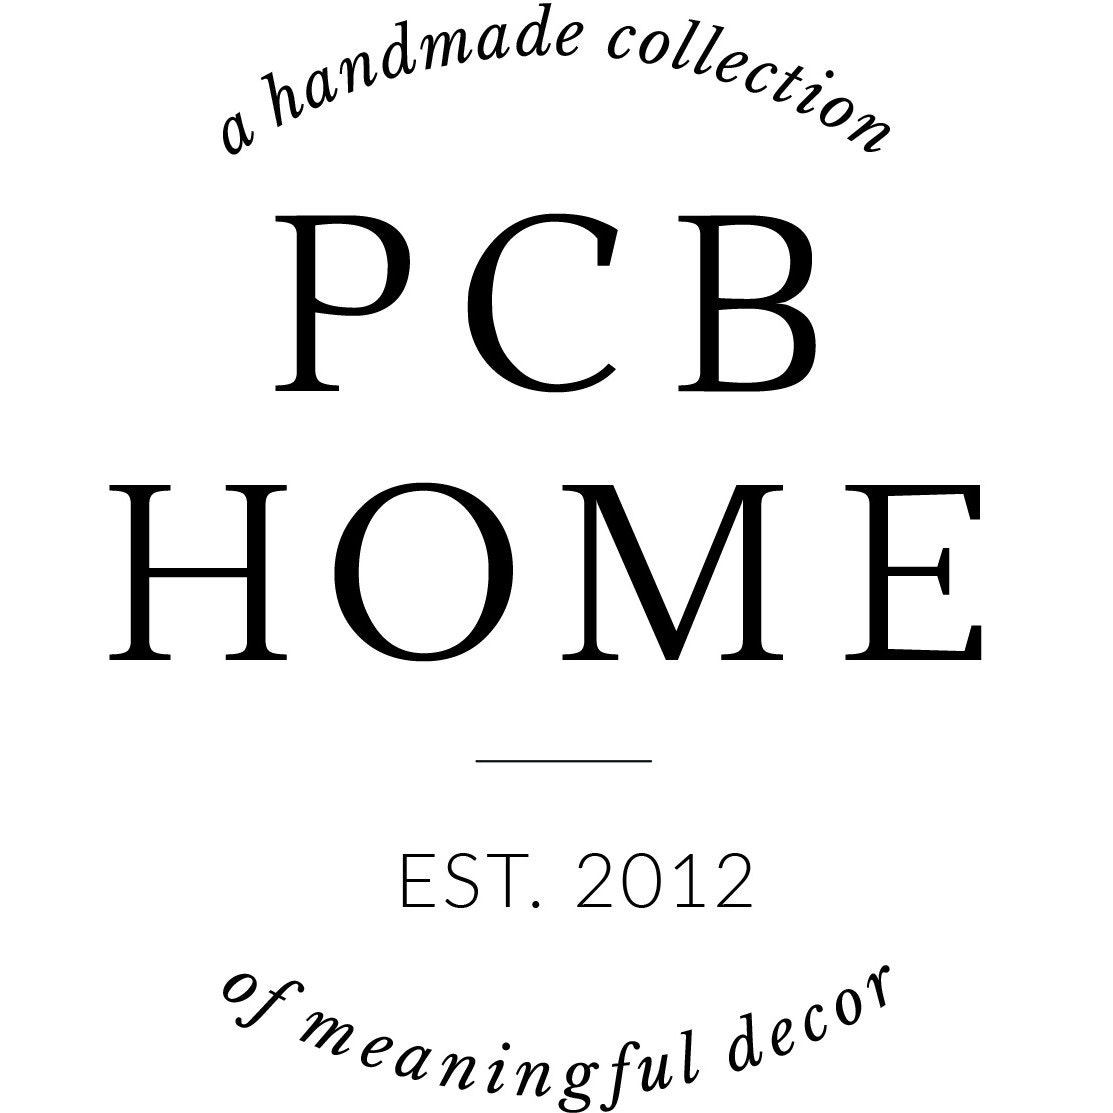 A Handmade Collection of Meaningful Decor by PCBHome on Etsy